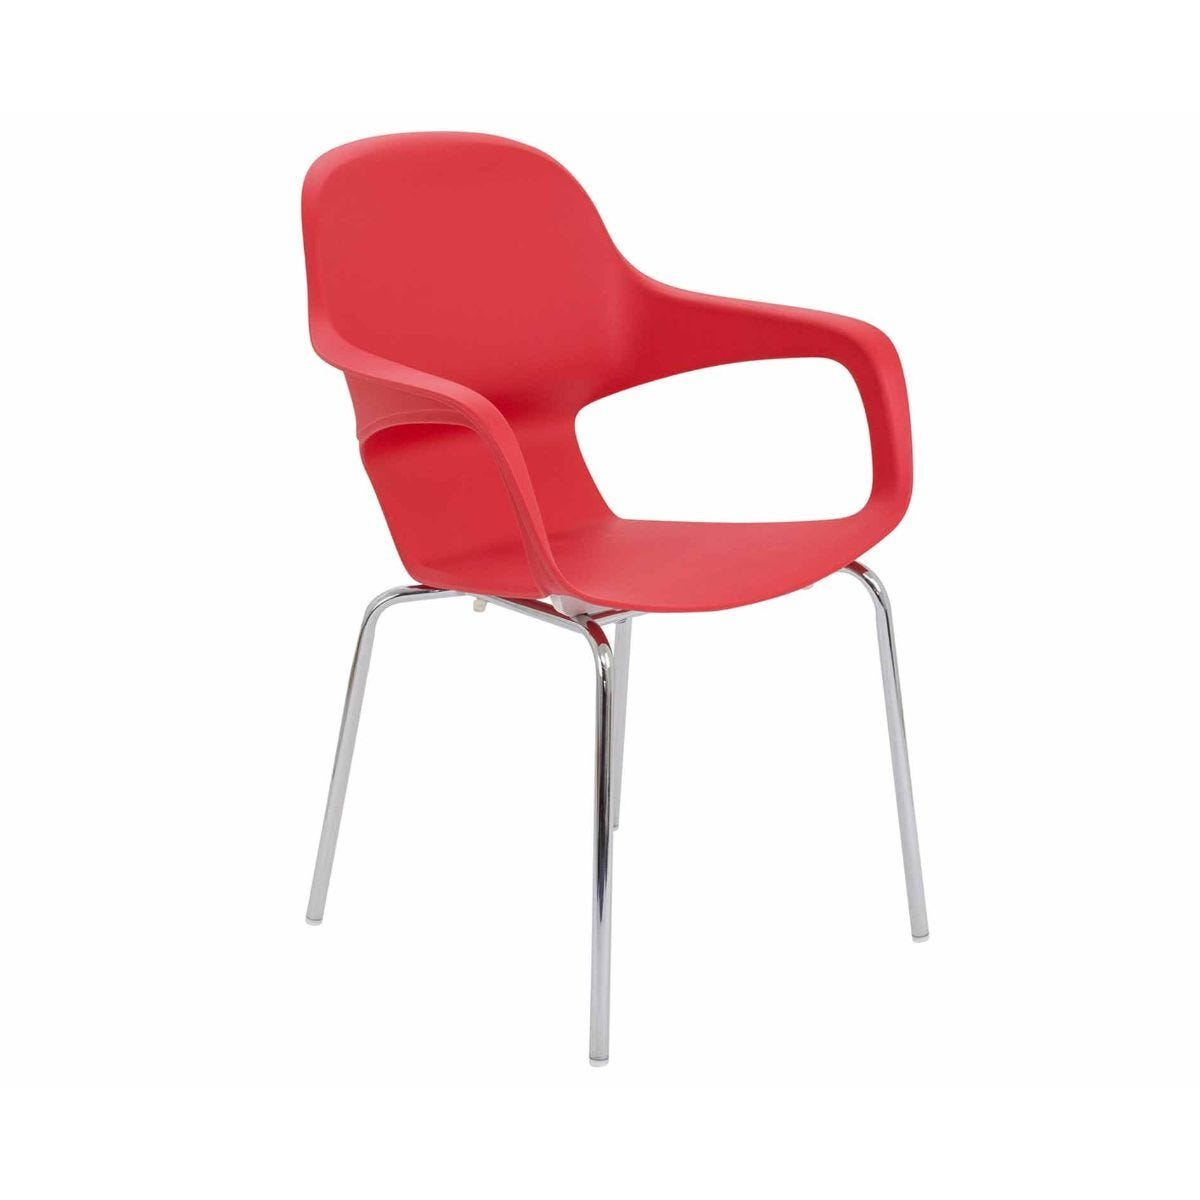 TC Office Ariel 2 Chrome Round Leg Stackable Chair Red